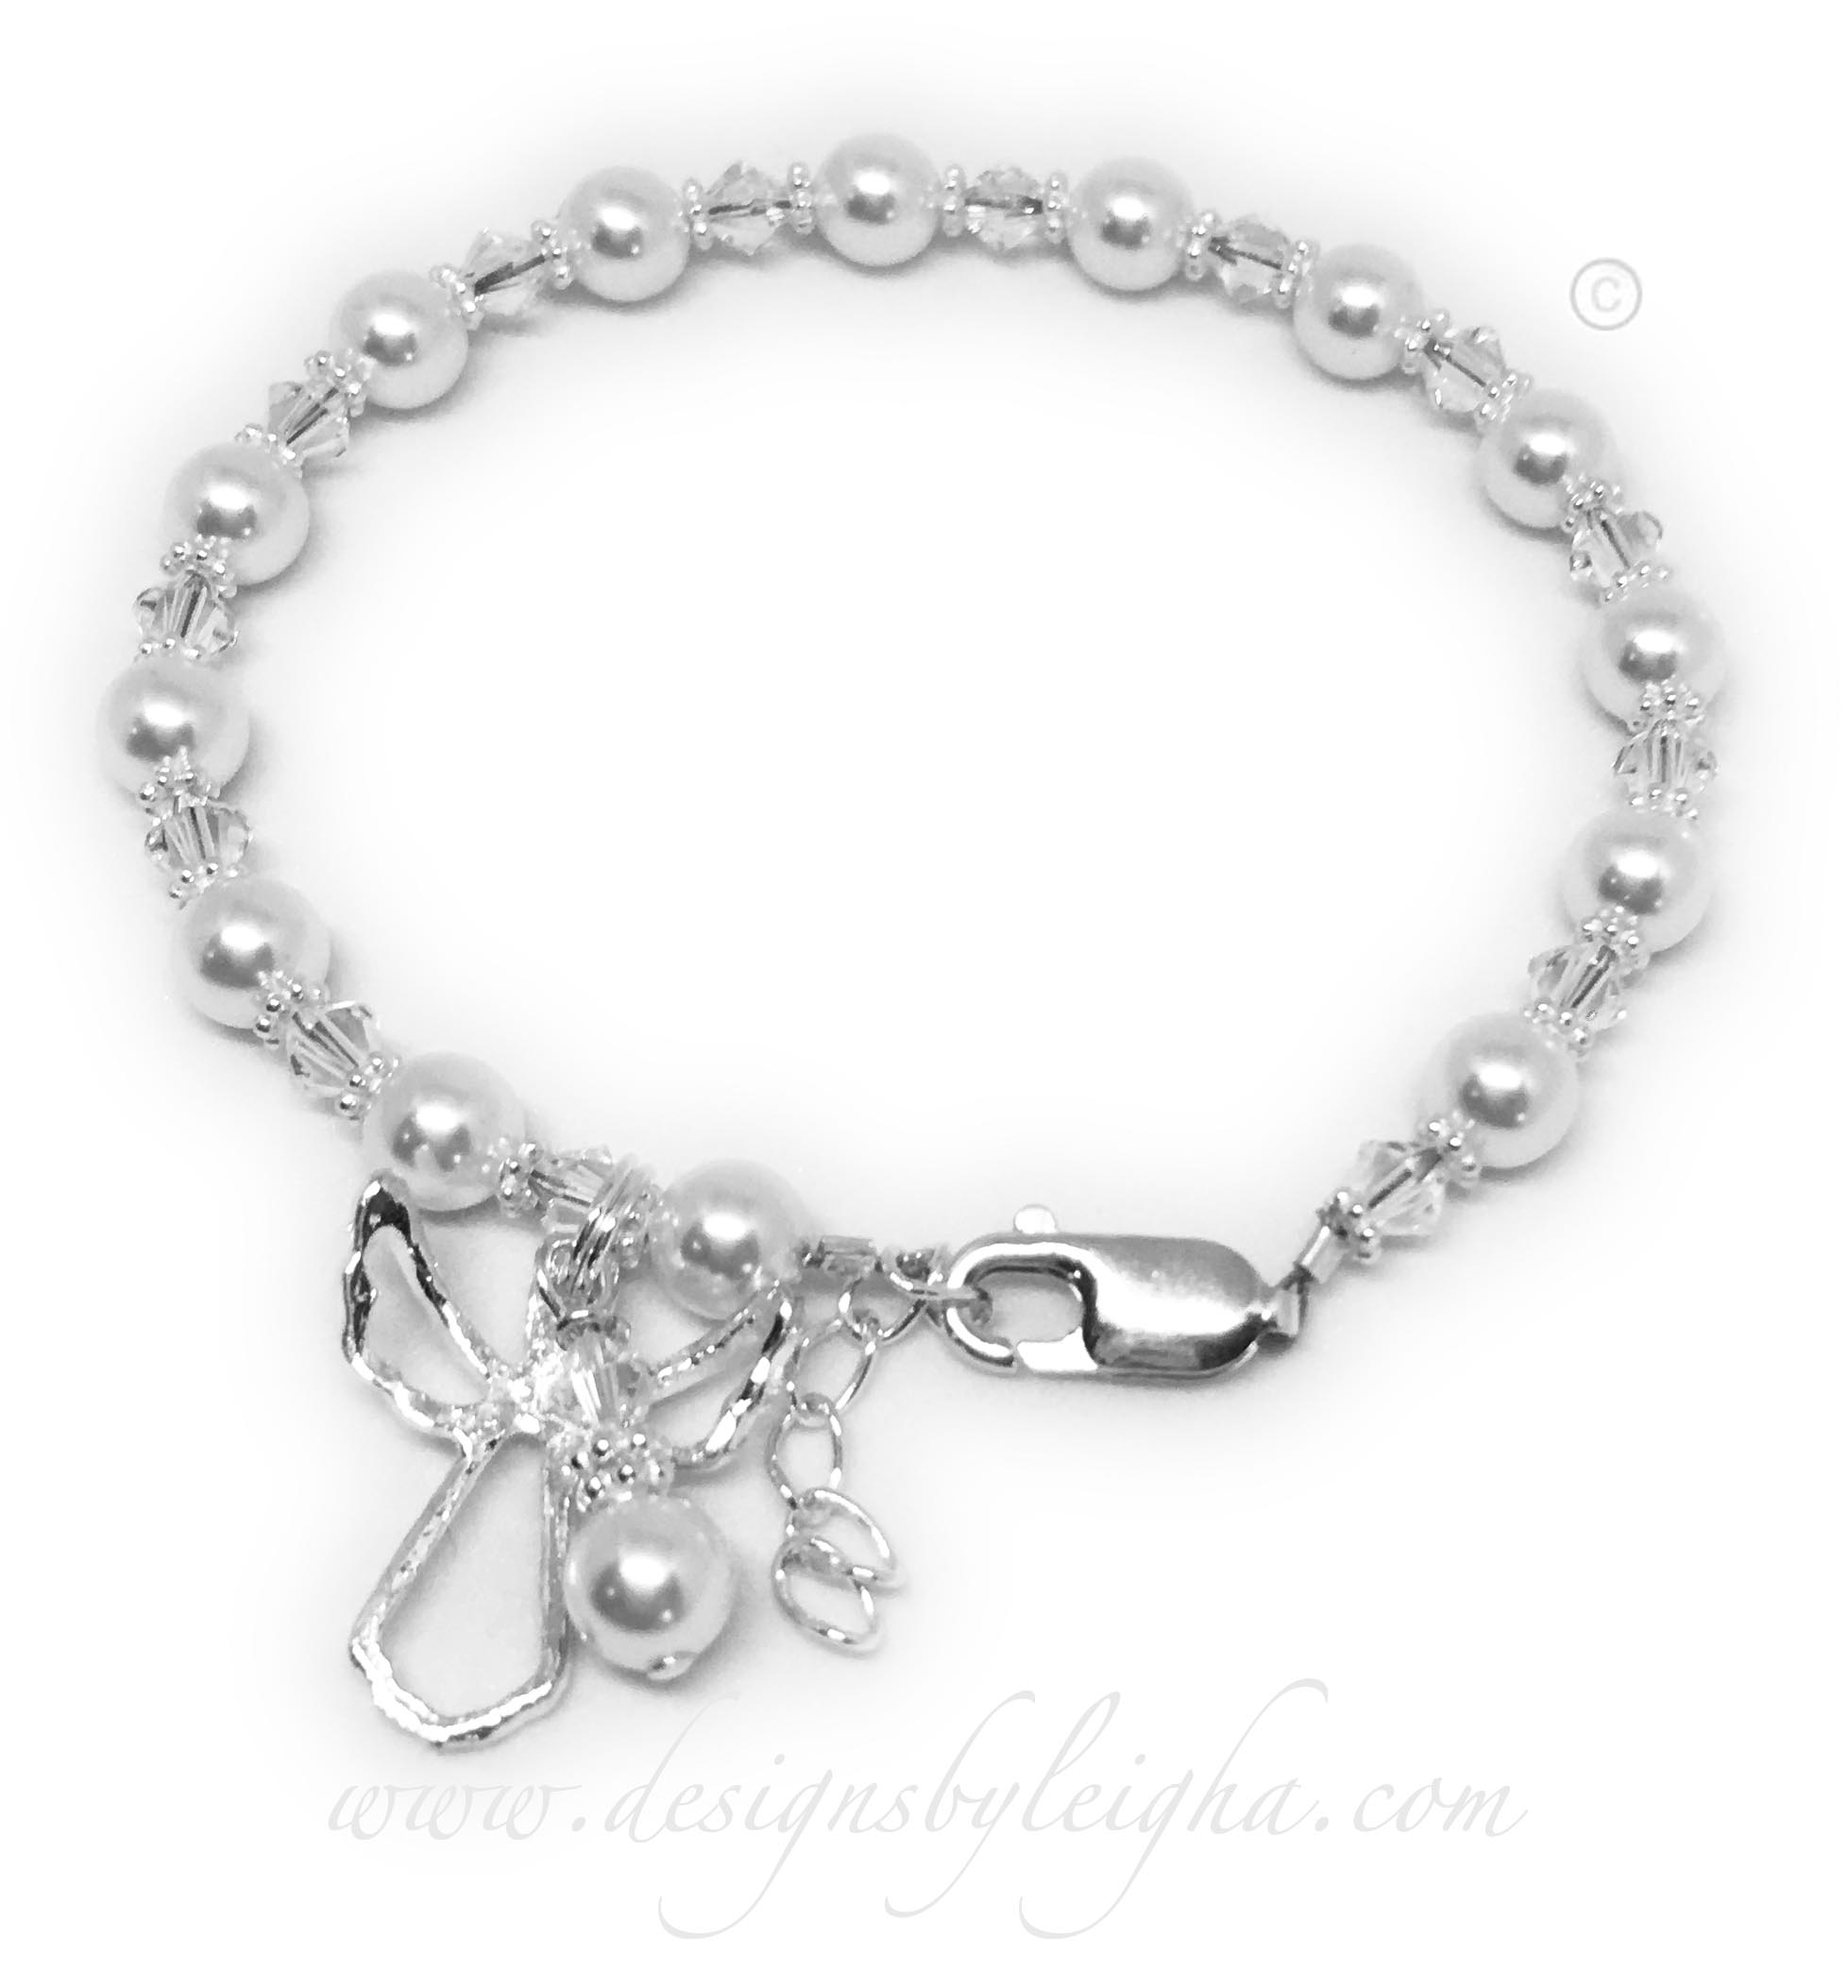 Guardian Angel Bracelet shown with White Swarovski Pearls for Lung Cancer.